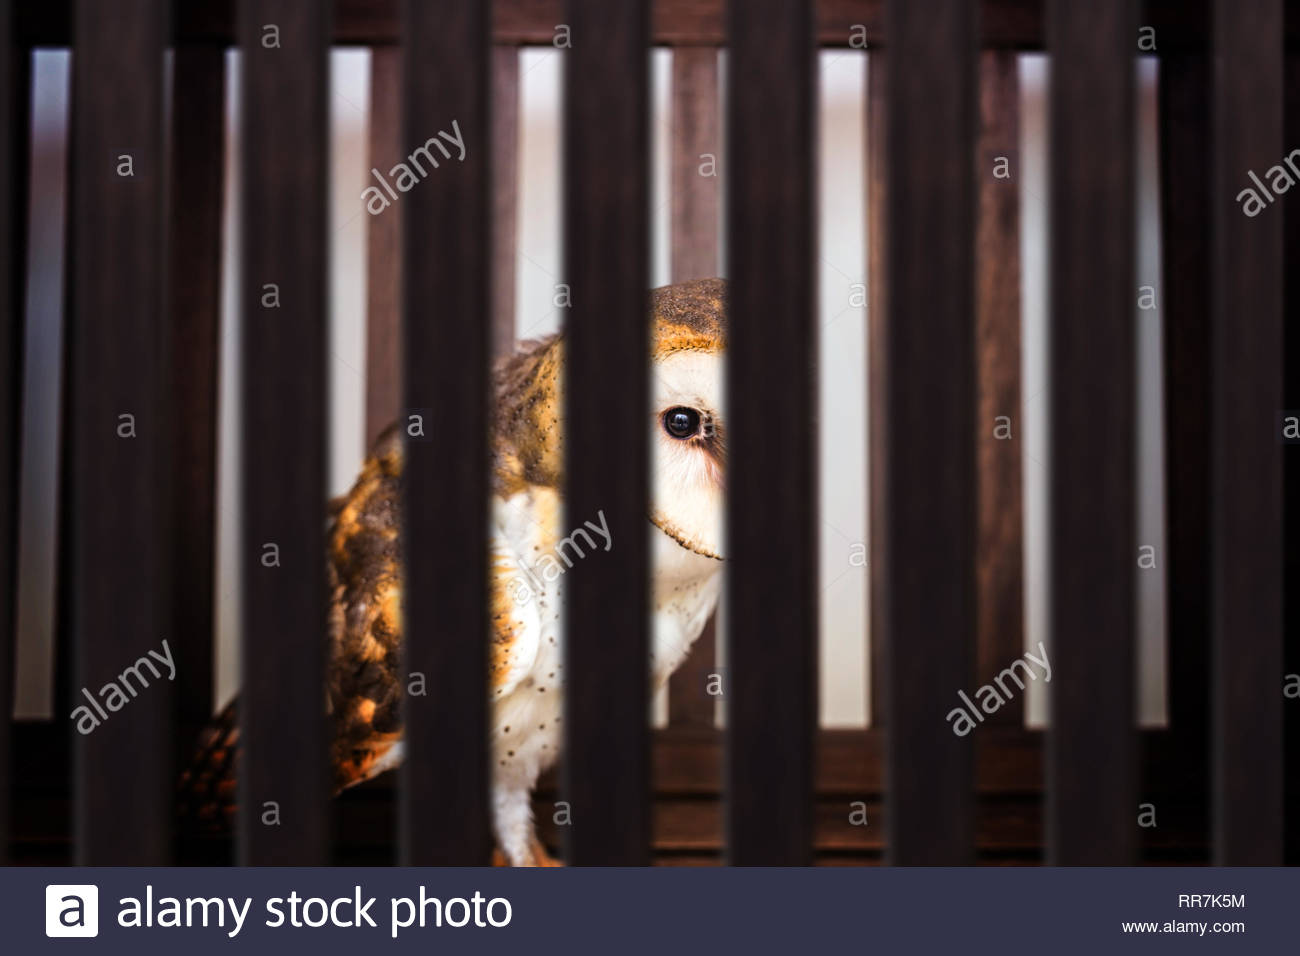 smuggling of animals. Photomontage of owl inside a wooden cage, mistreatment of exotic birds. - Stock Image